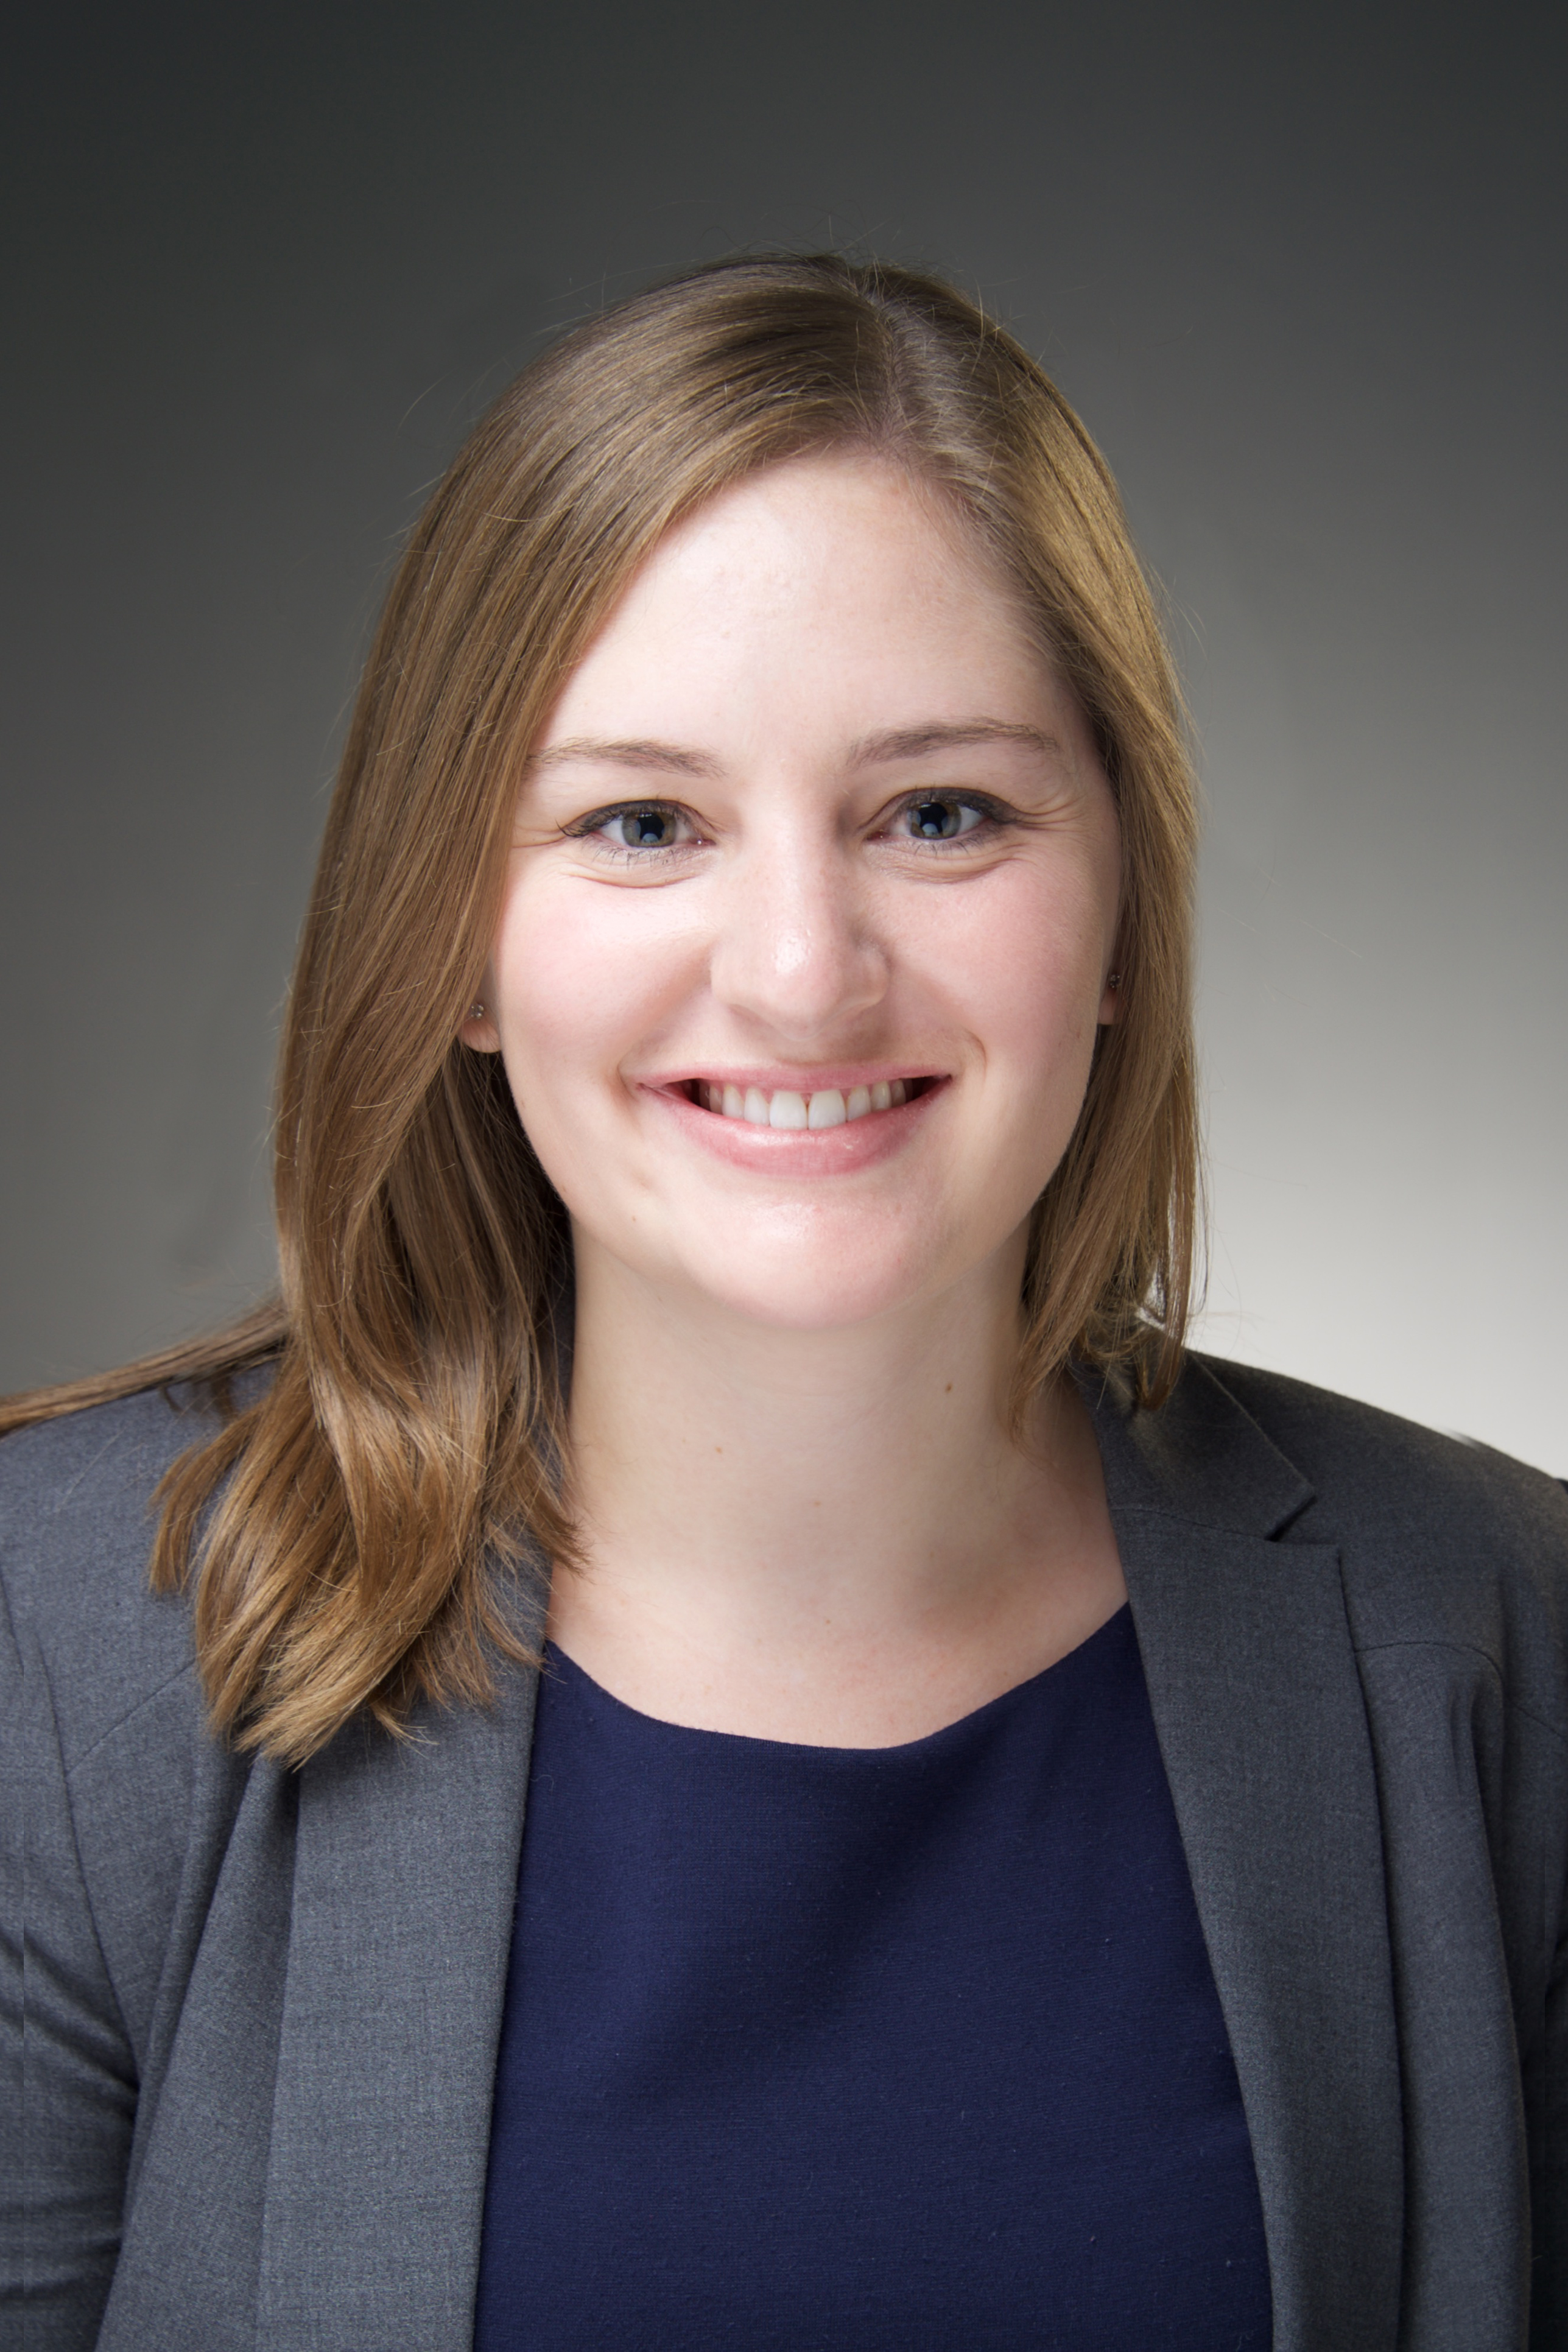 Jessica Rockafellow - PGY1